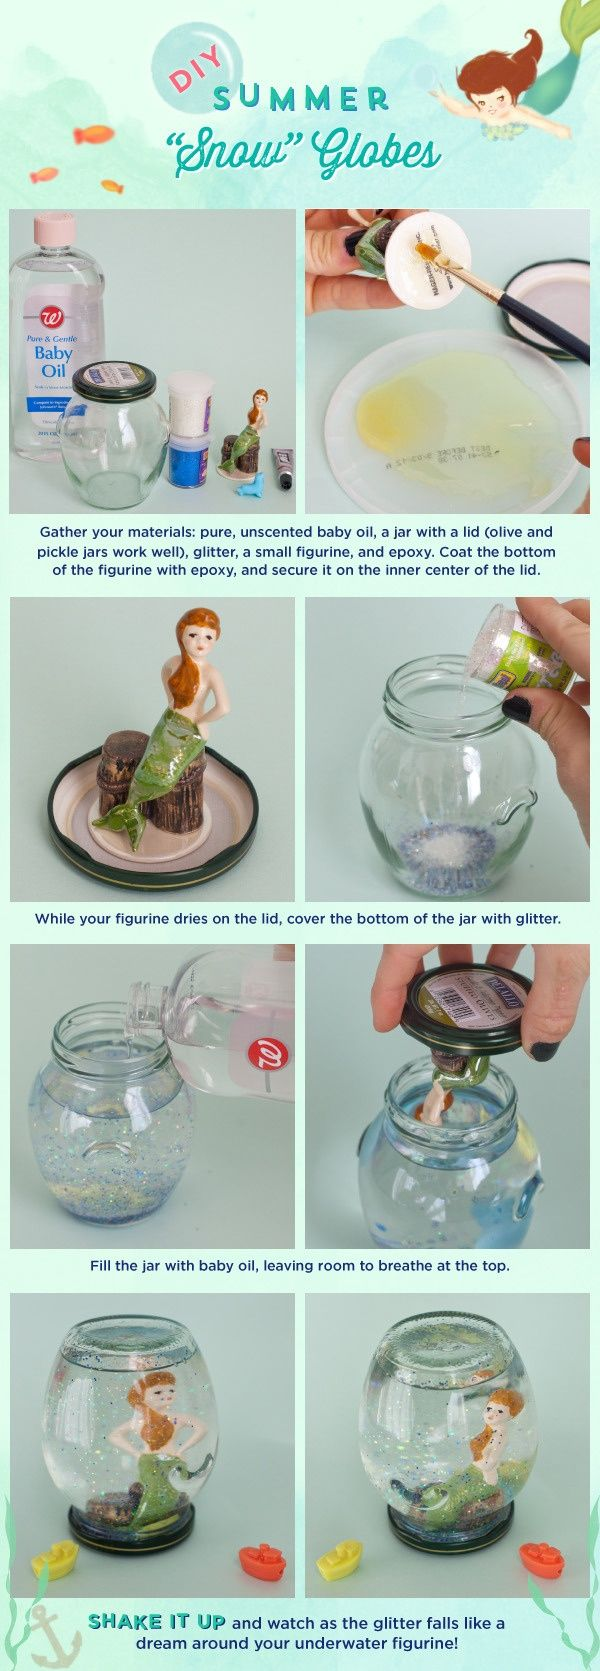 "Shake things up: Make a DIY Summer ""Snow"" Globe! 